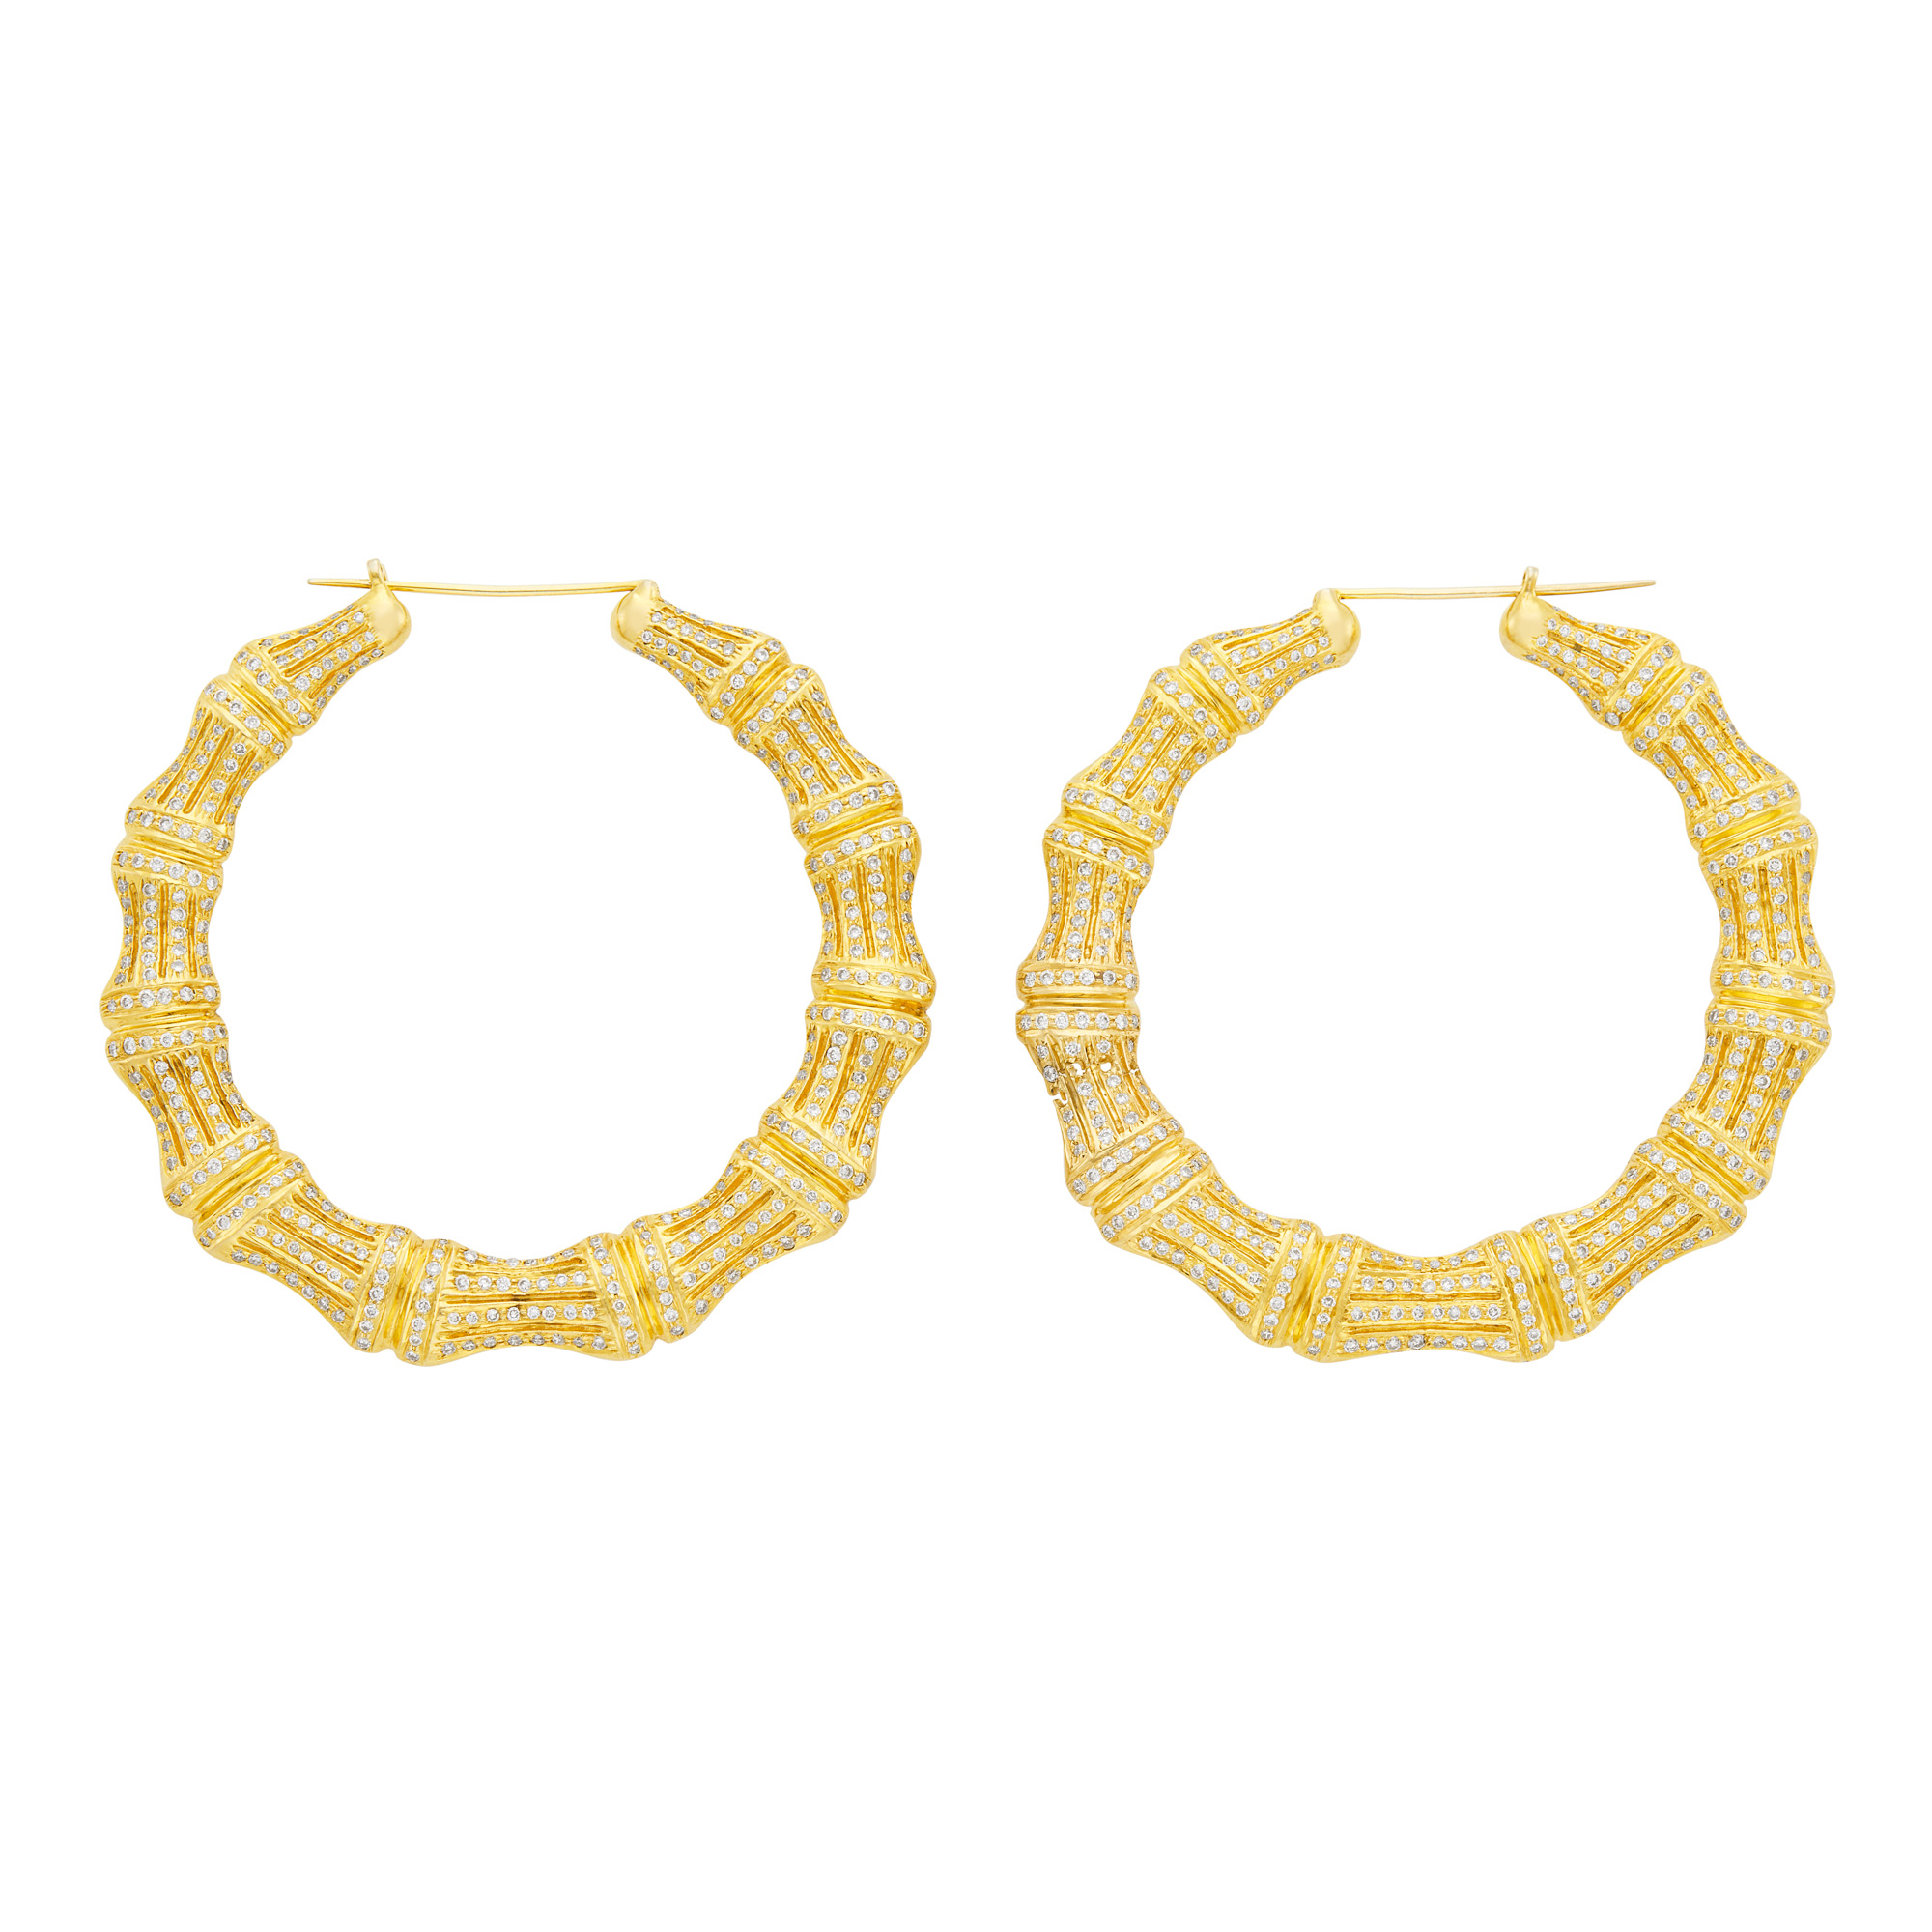 Lot image - Pair of Oversized Gold and Diamond Hoop Earrings